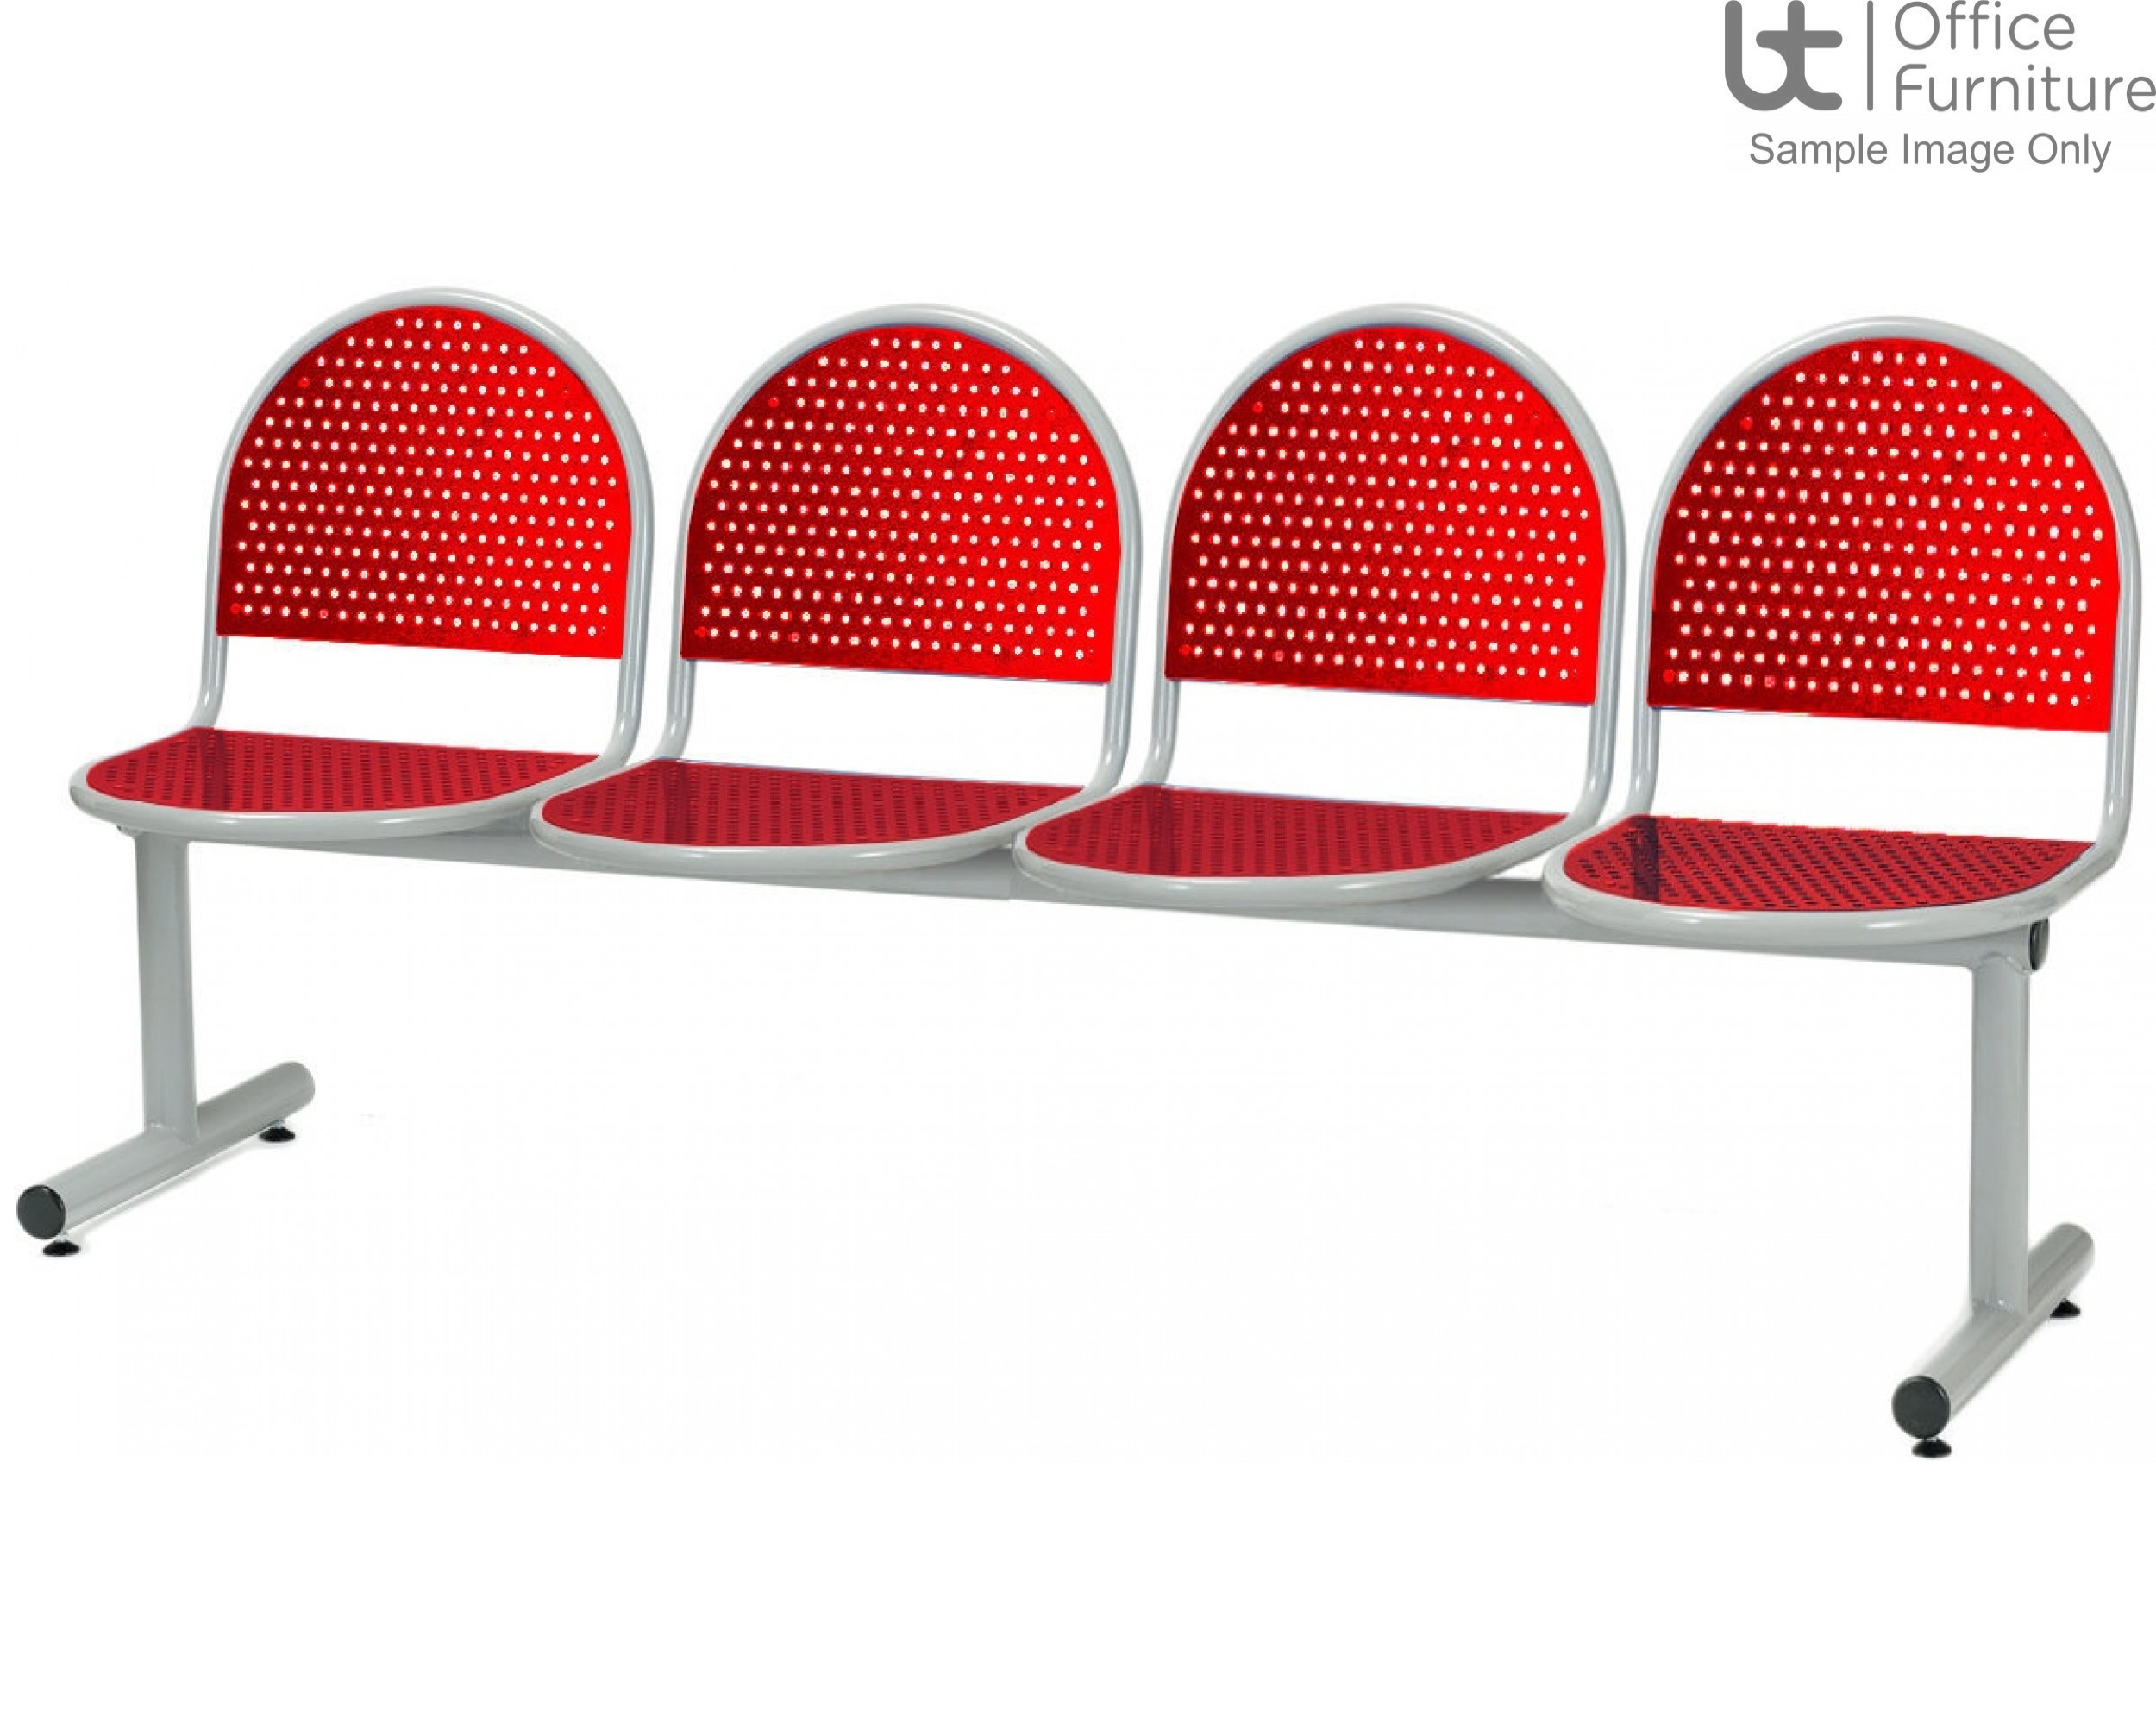 Ambe Deluxe Steel 4 Seat Perforated Beam Seating Unit